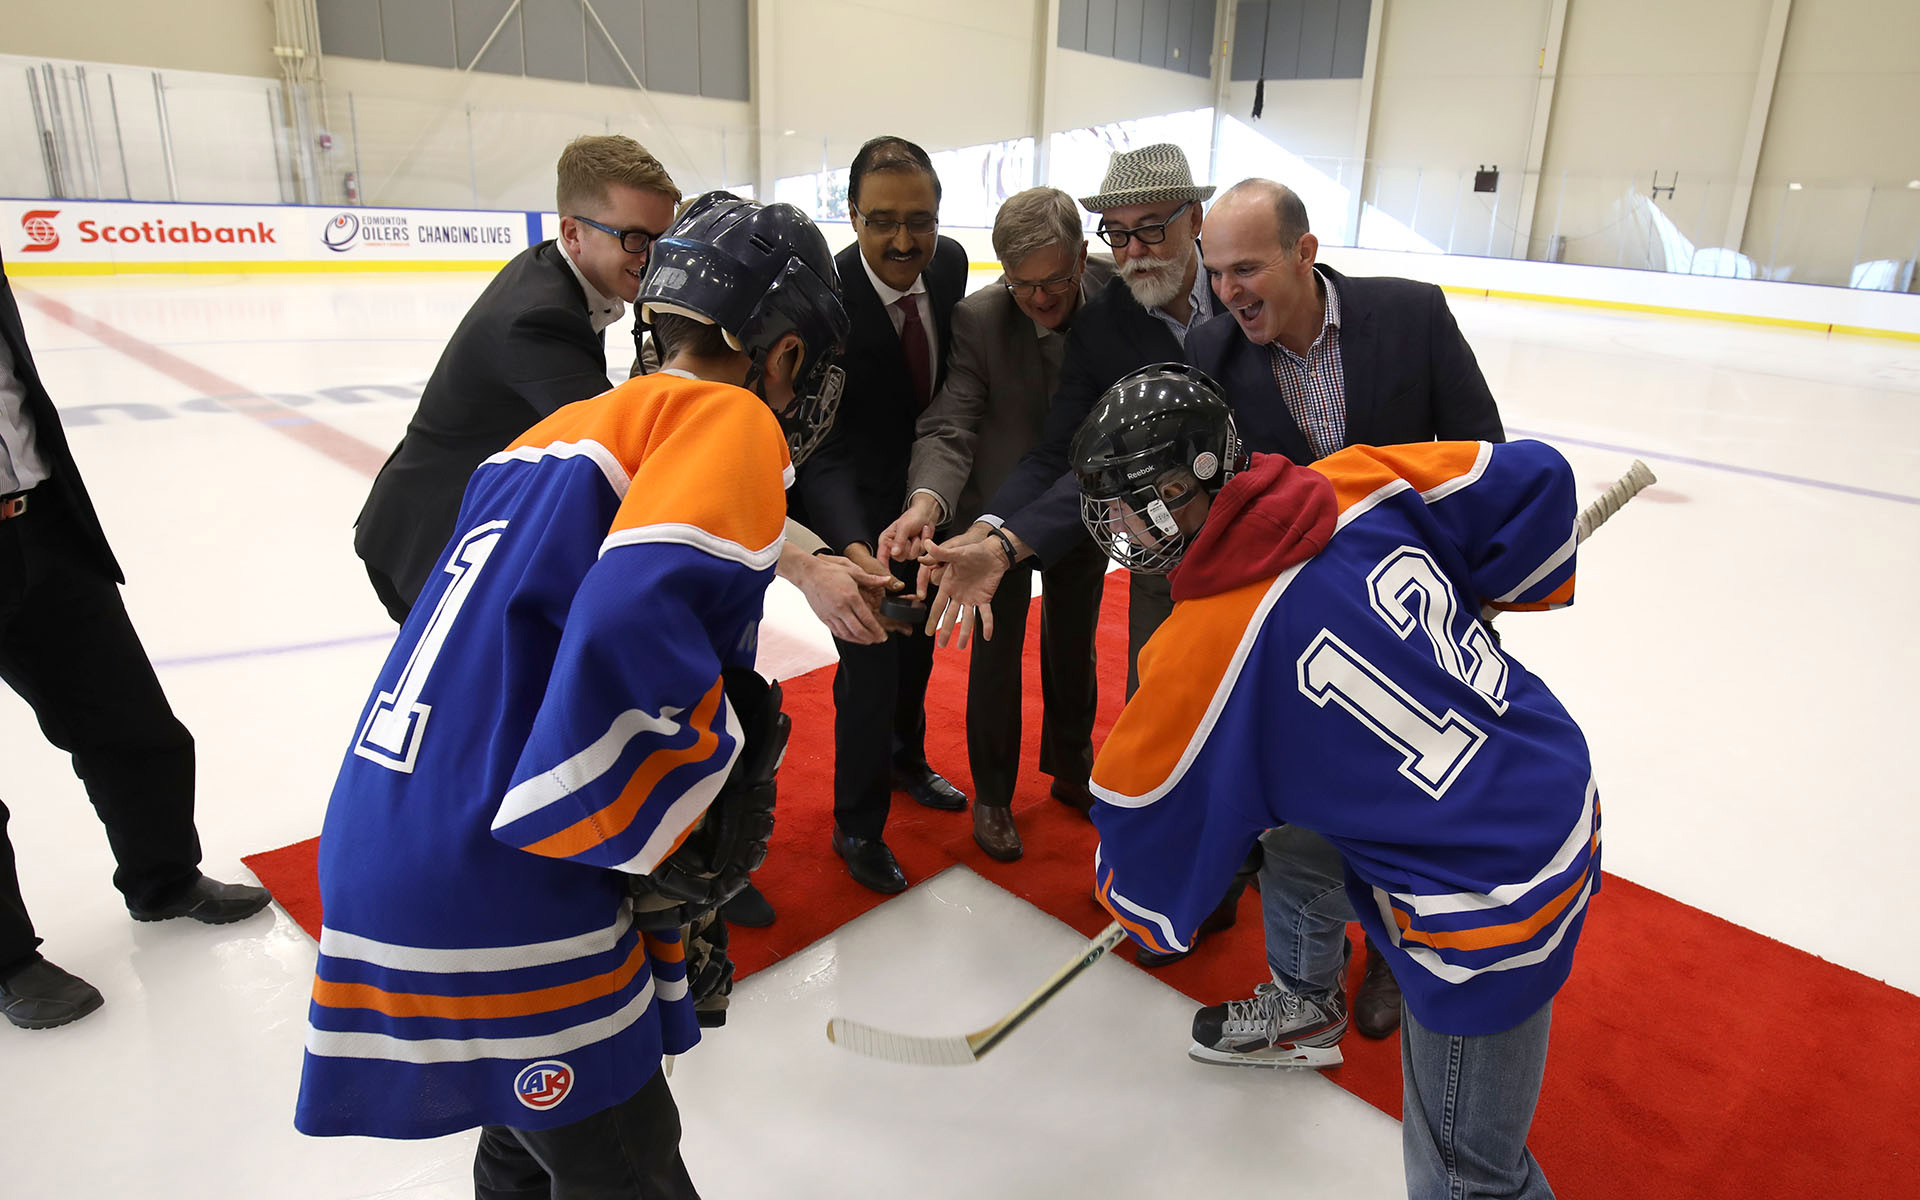 Excitement Surrounds Grand Opening Of Downtown Community Arena